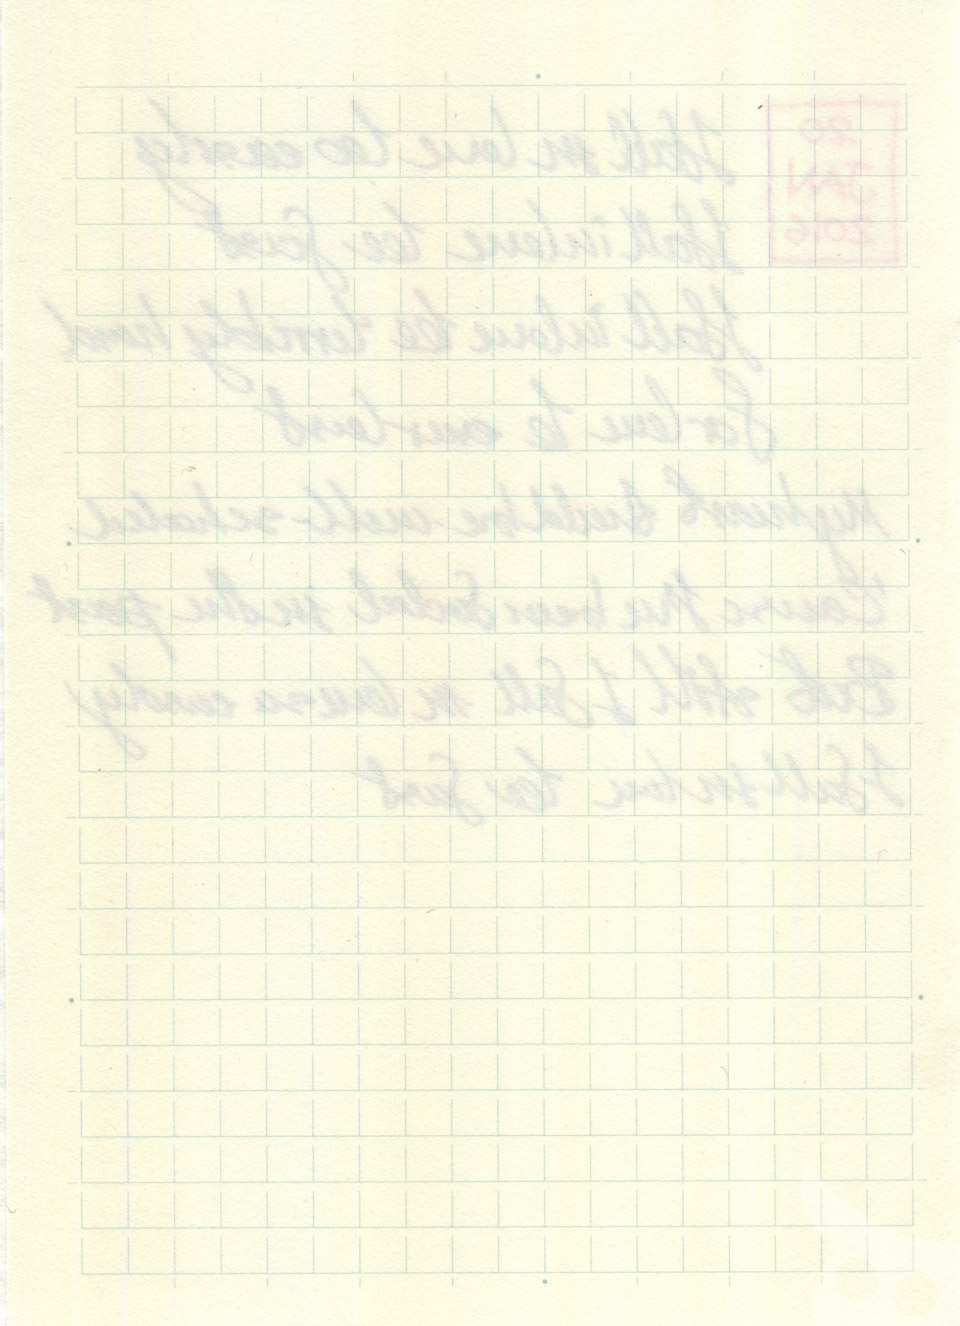 MD-Notebook-Scan-2